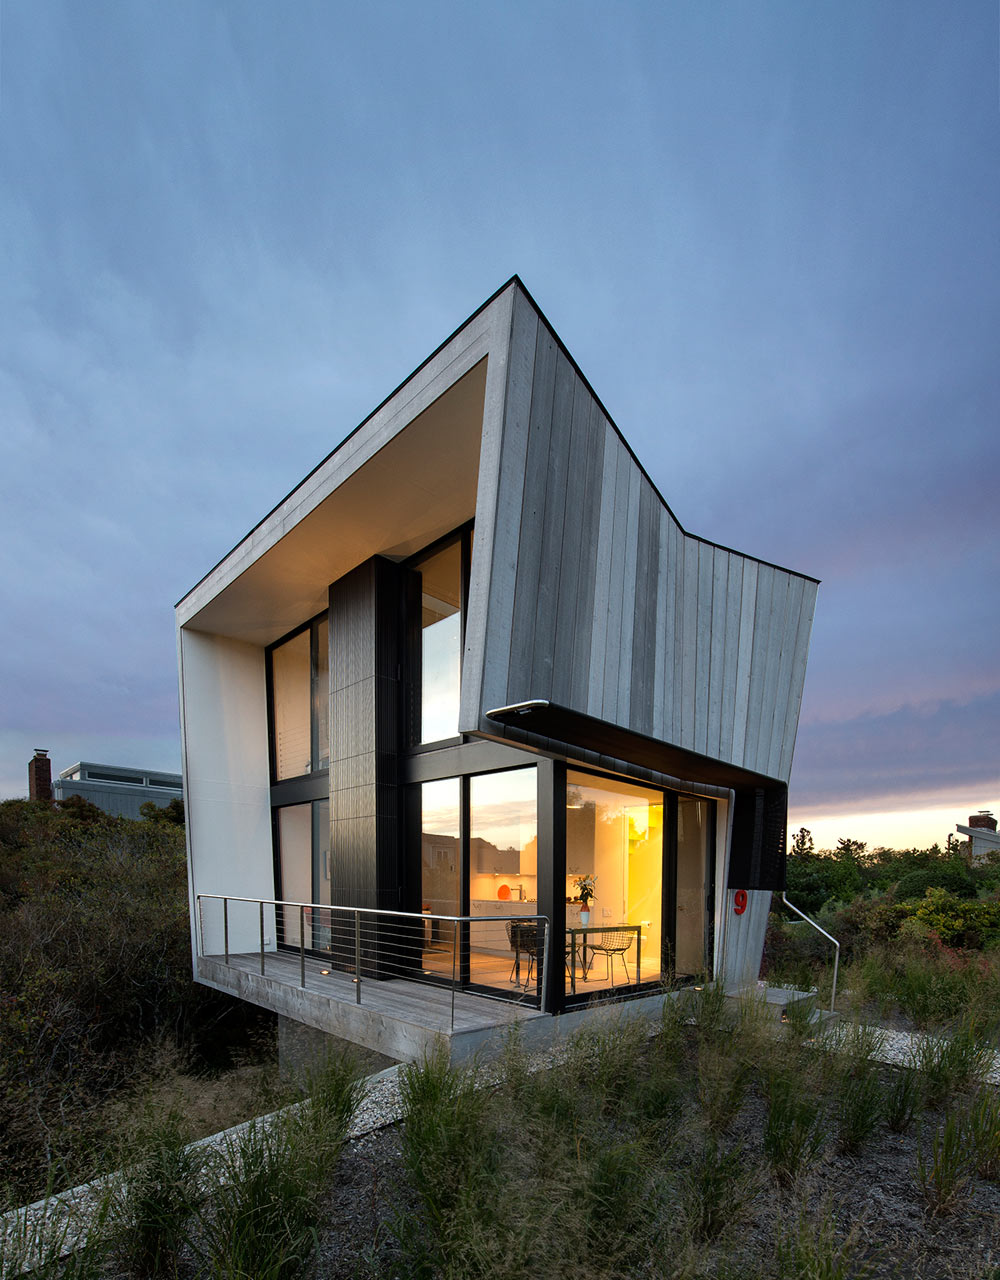 A Two-Story Beach House with a Small Footprint